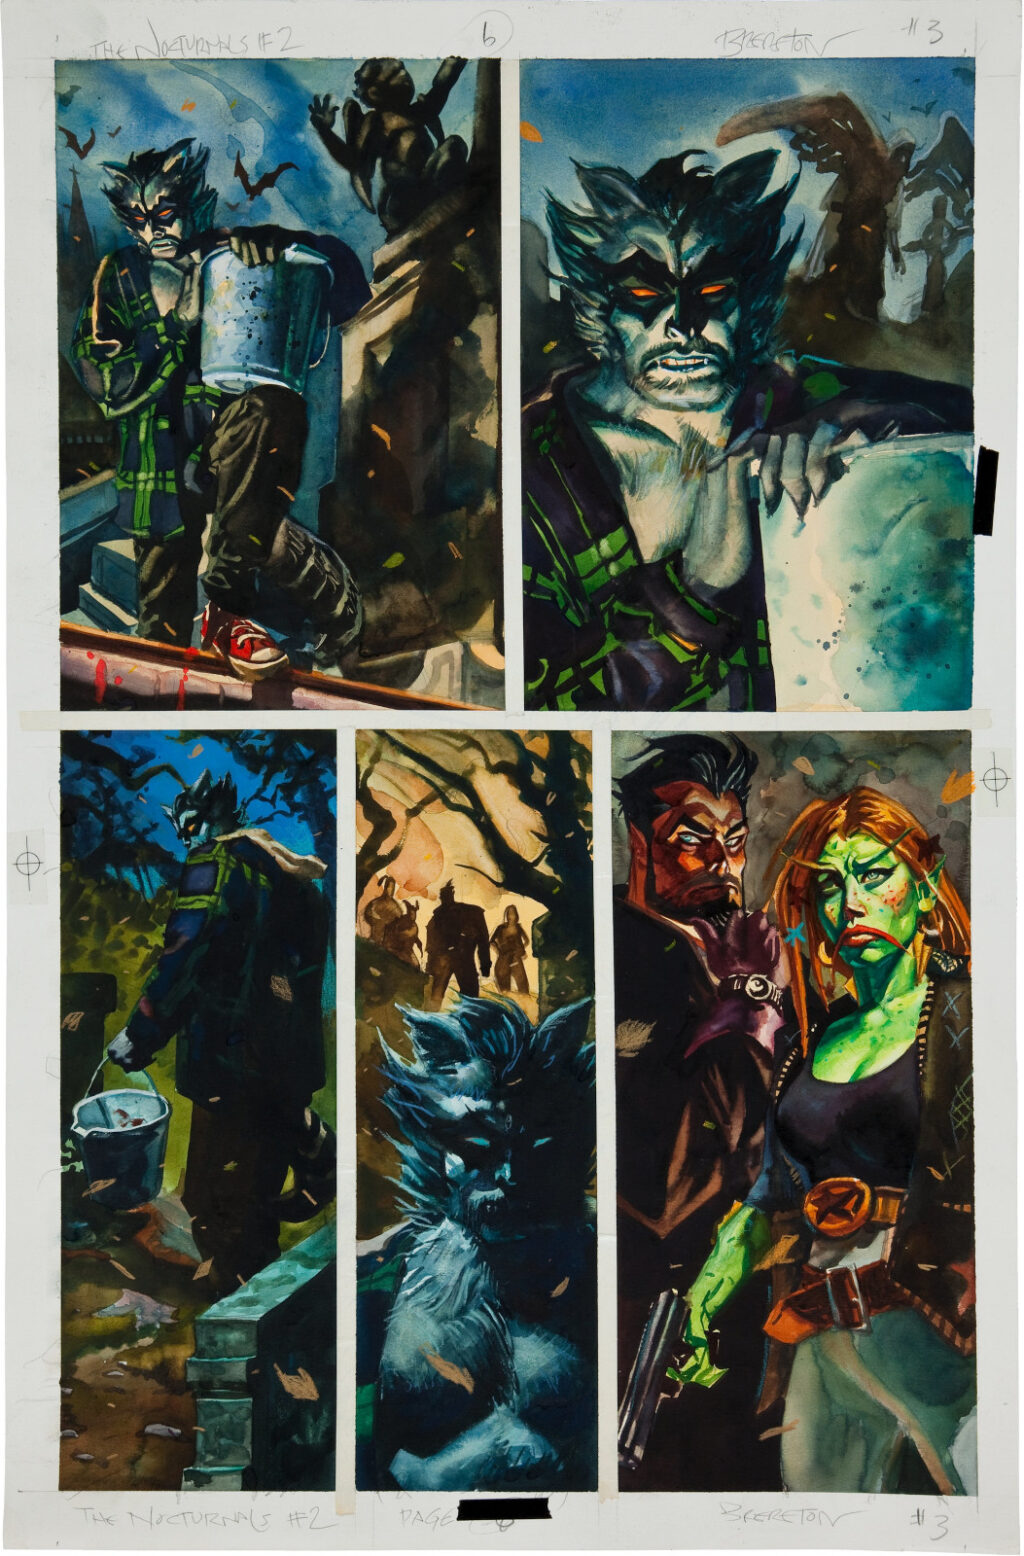 Nocturnals issue 2 page 6 by Dan Brereton